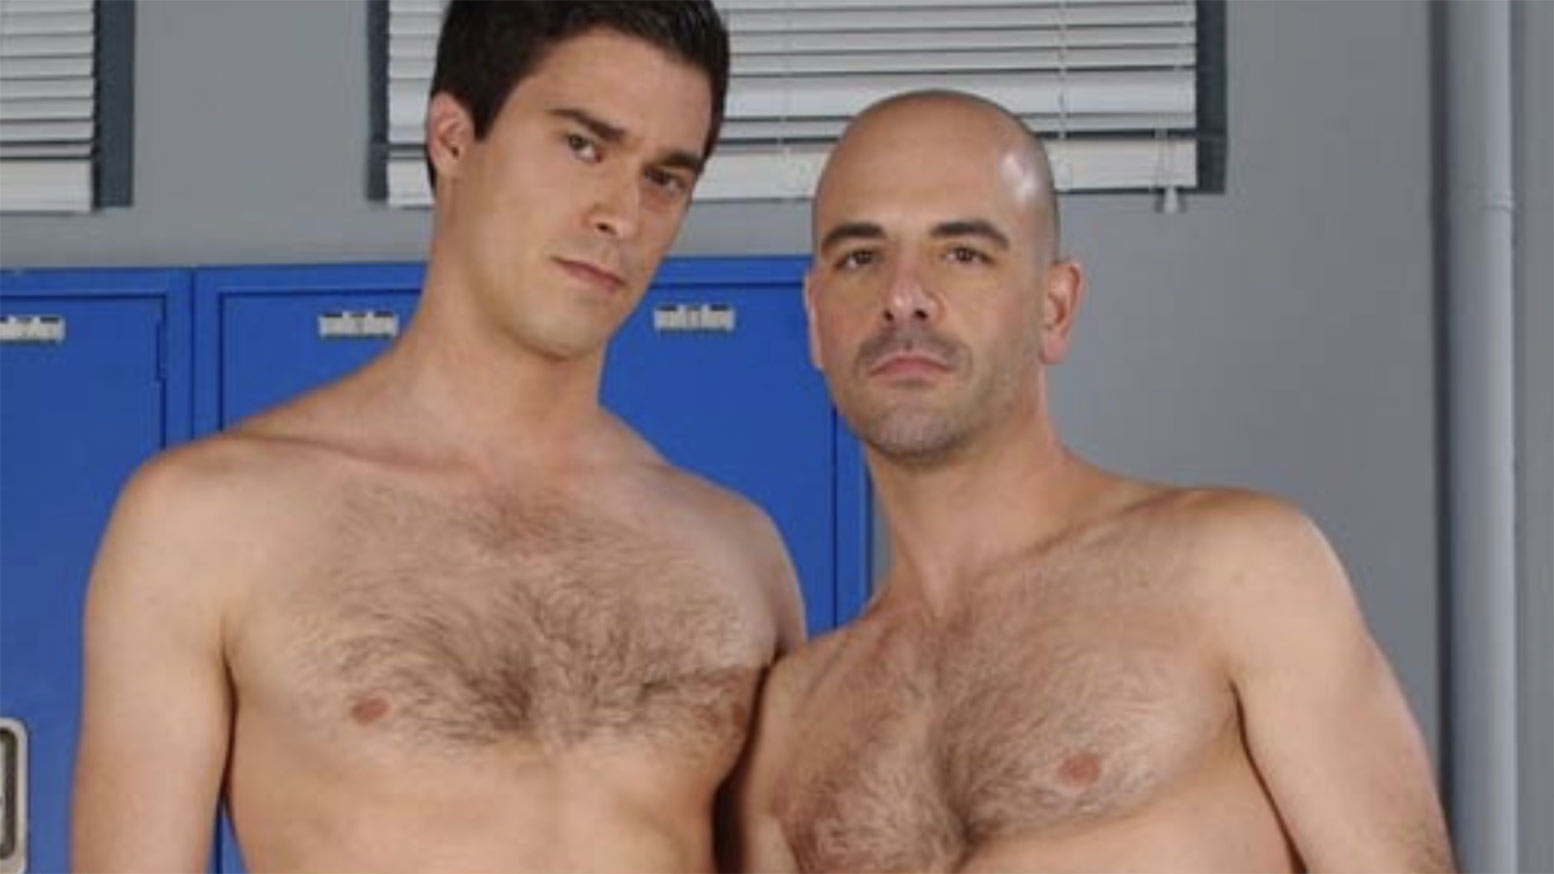 Adam Ruso Porn richard.xxx: adam russo & mike martinez - waybig